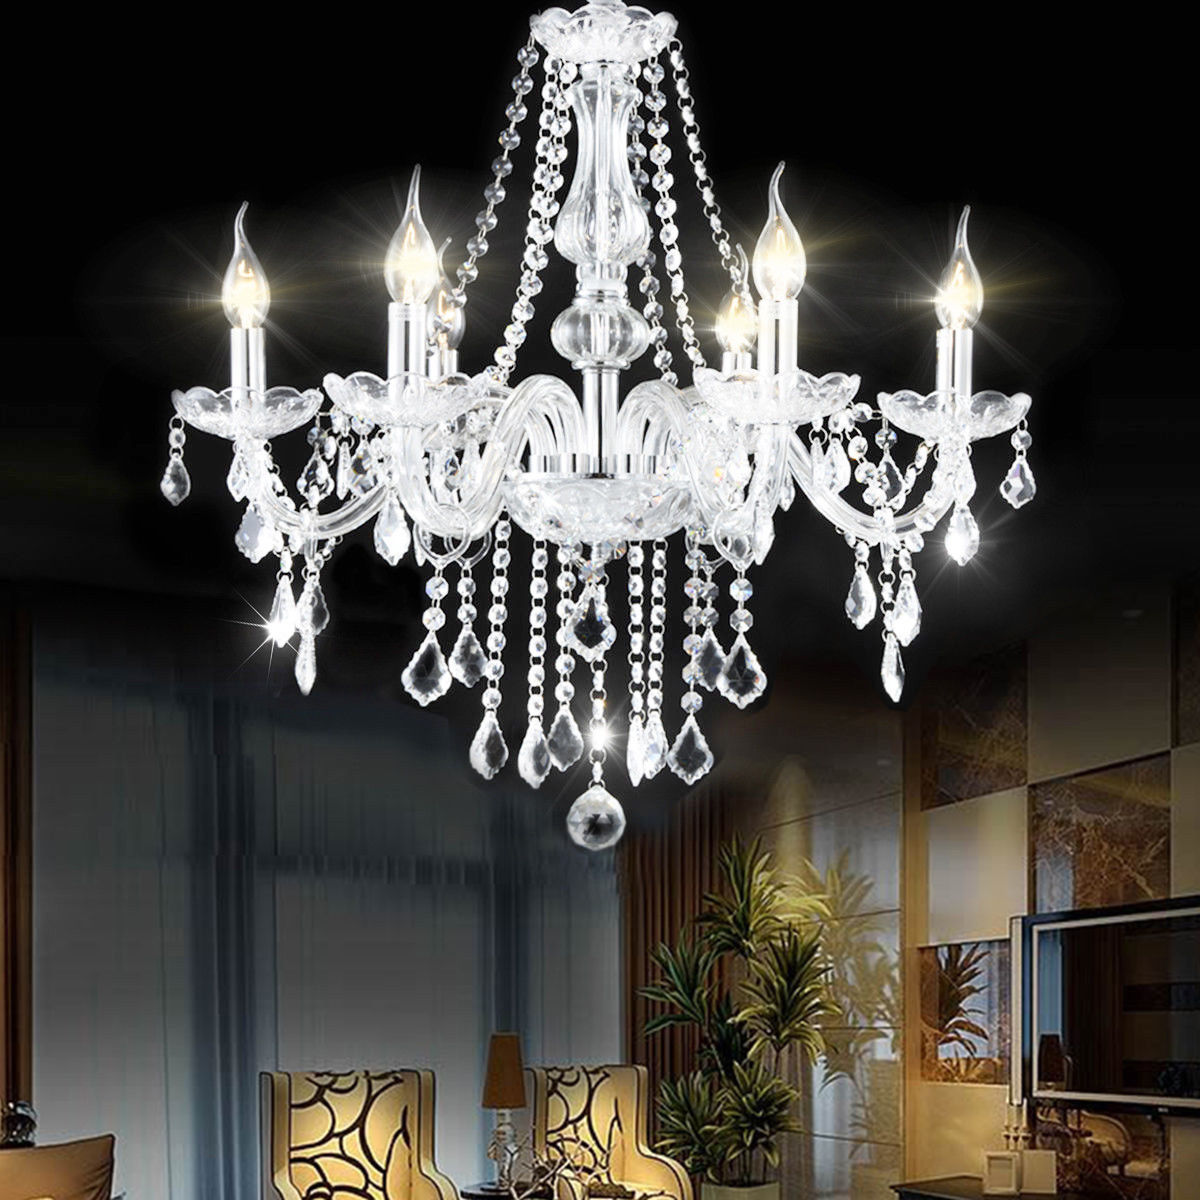 Costway Elegant Crystal Chandelier Modern 6 Ceiling Light Lamp Pendant Fixture Lighting